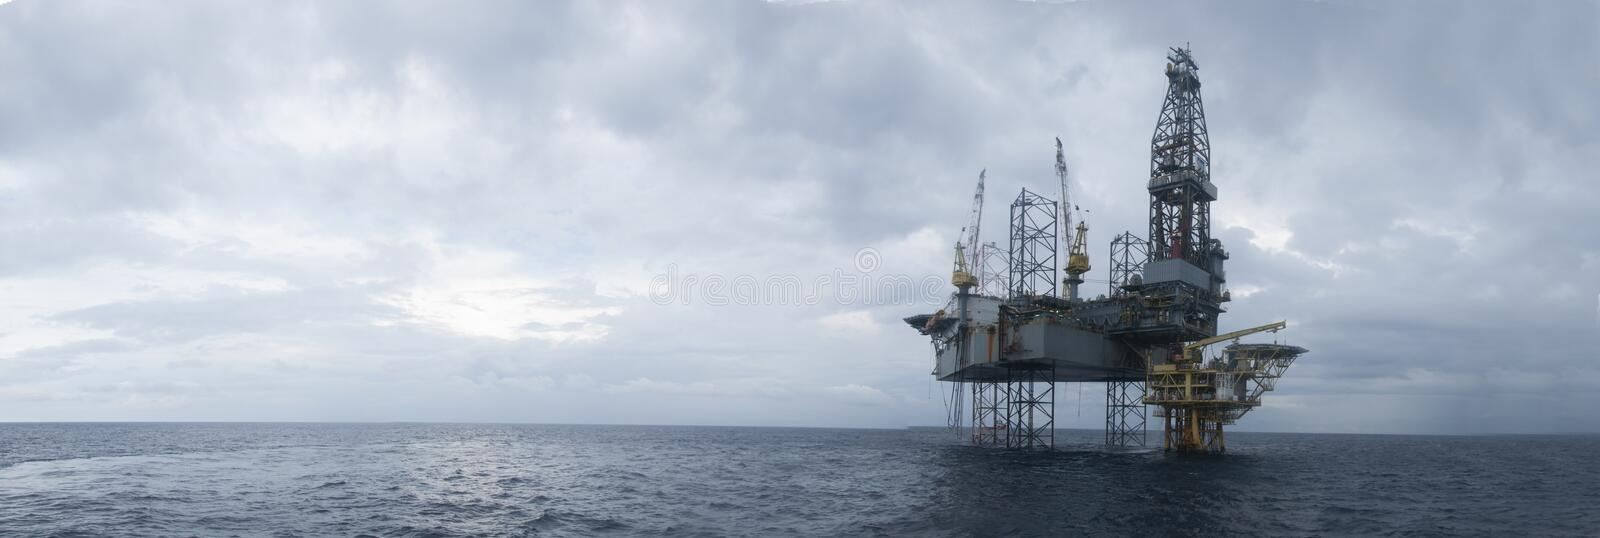 Offshore Jack Up Drilling Rig Over The Top of Oil and Gas royalty free stock photos